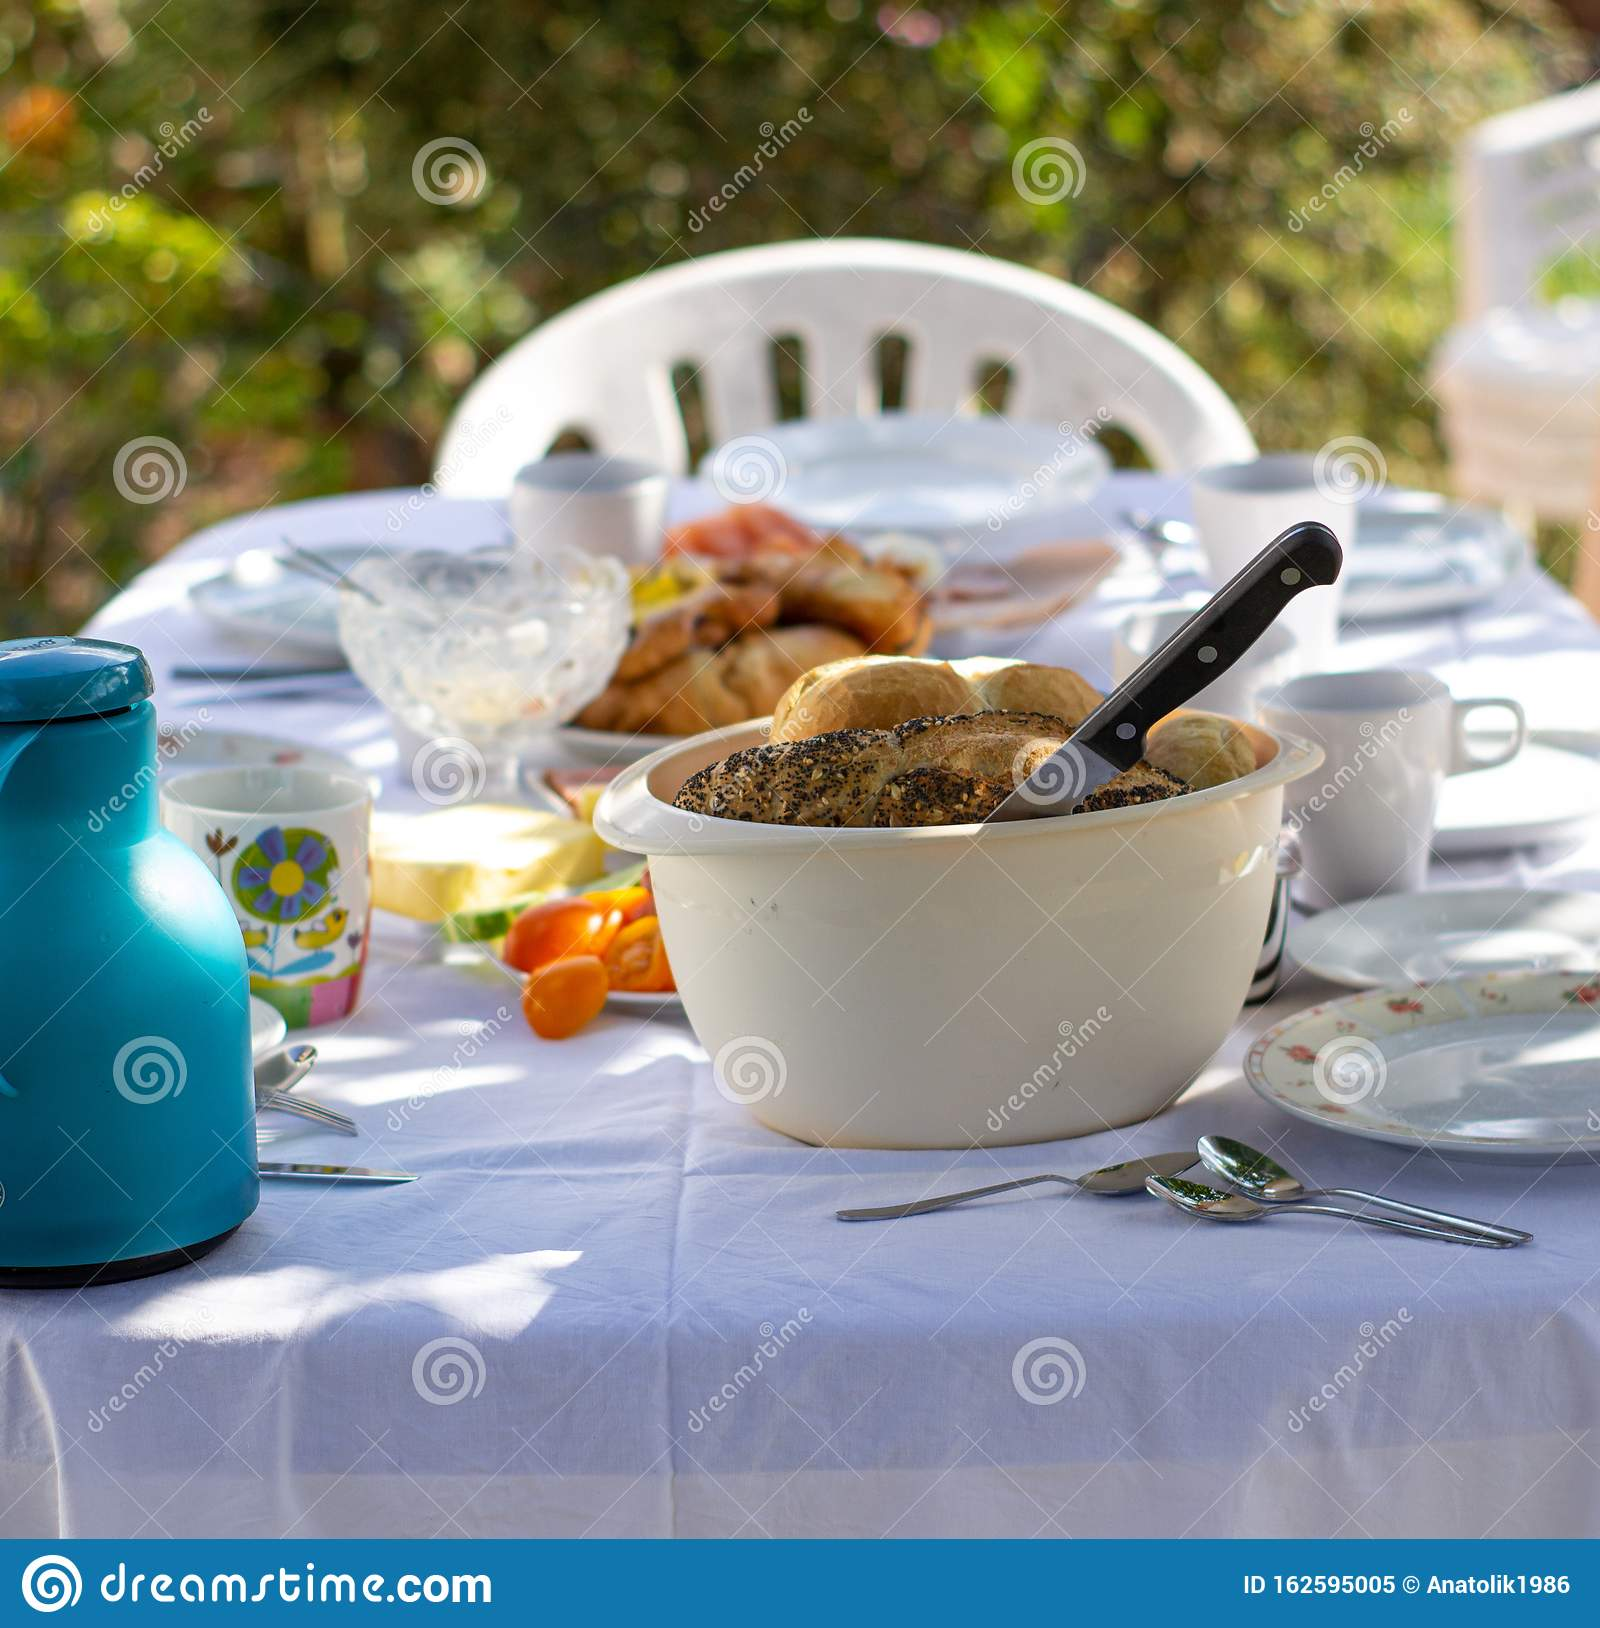 Outdoor Spring Or Summer Casual Garden Party Set Up For Lunch Dinner Stock Image Image Of Decor Nature 162595005